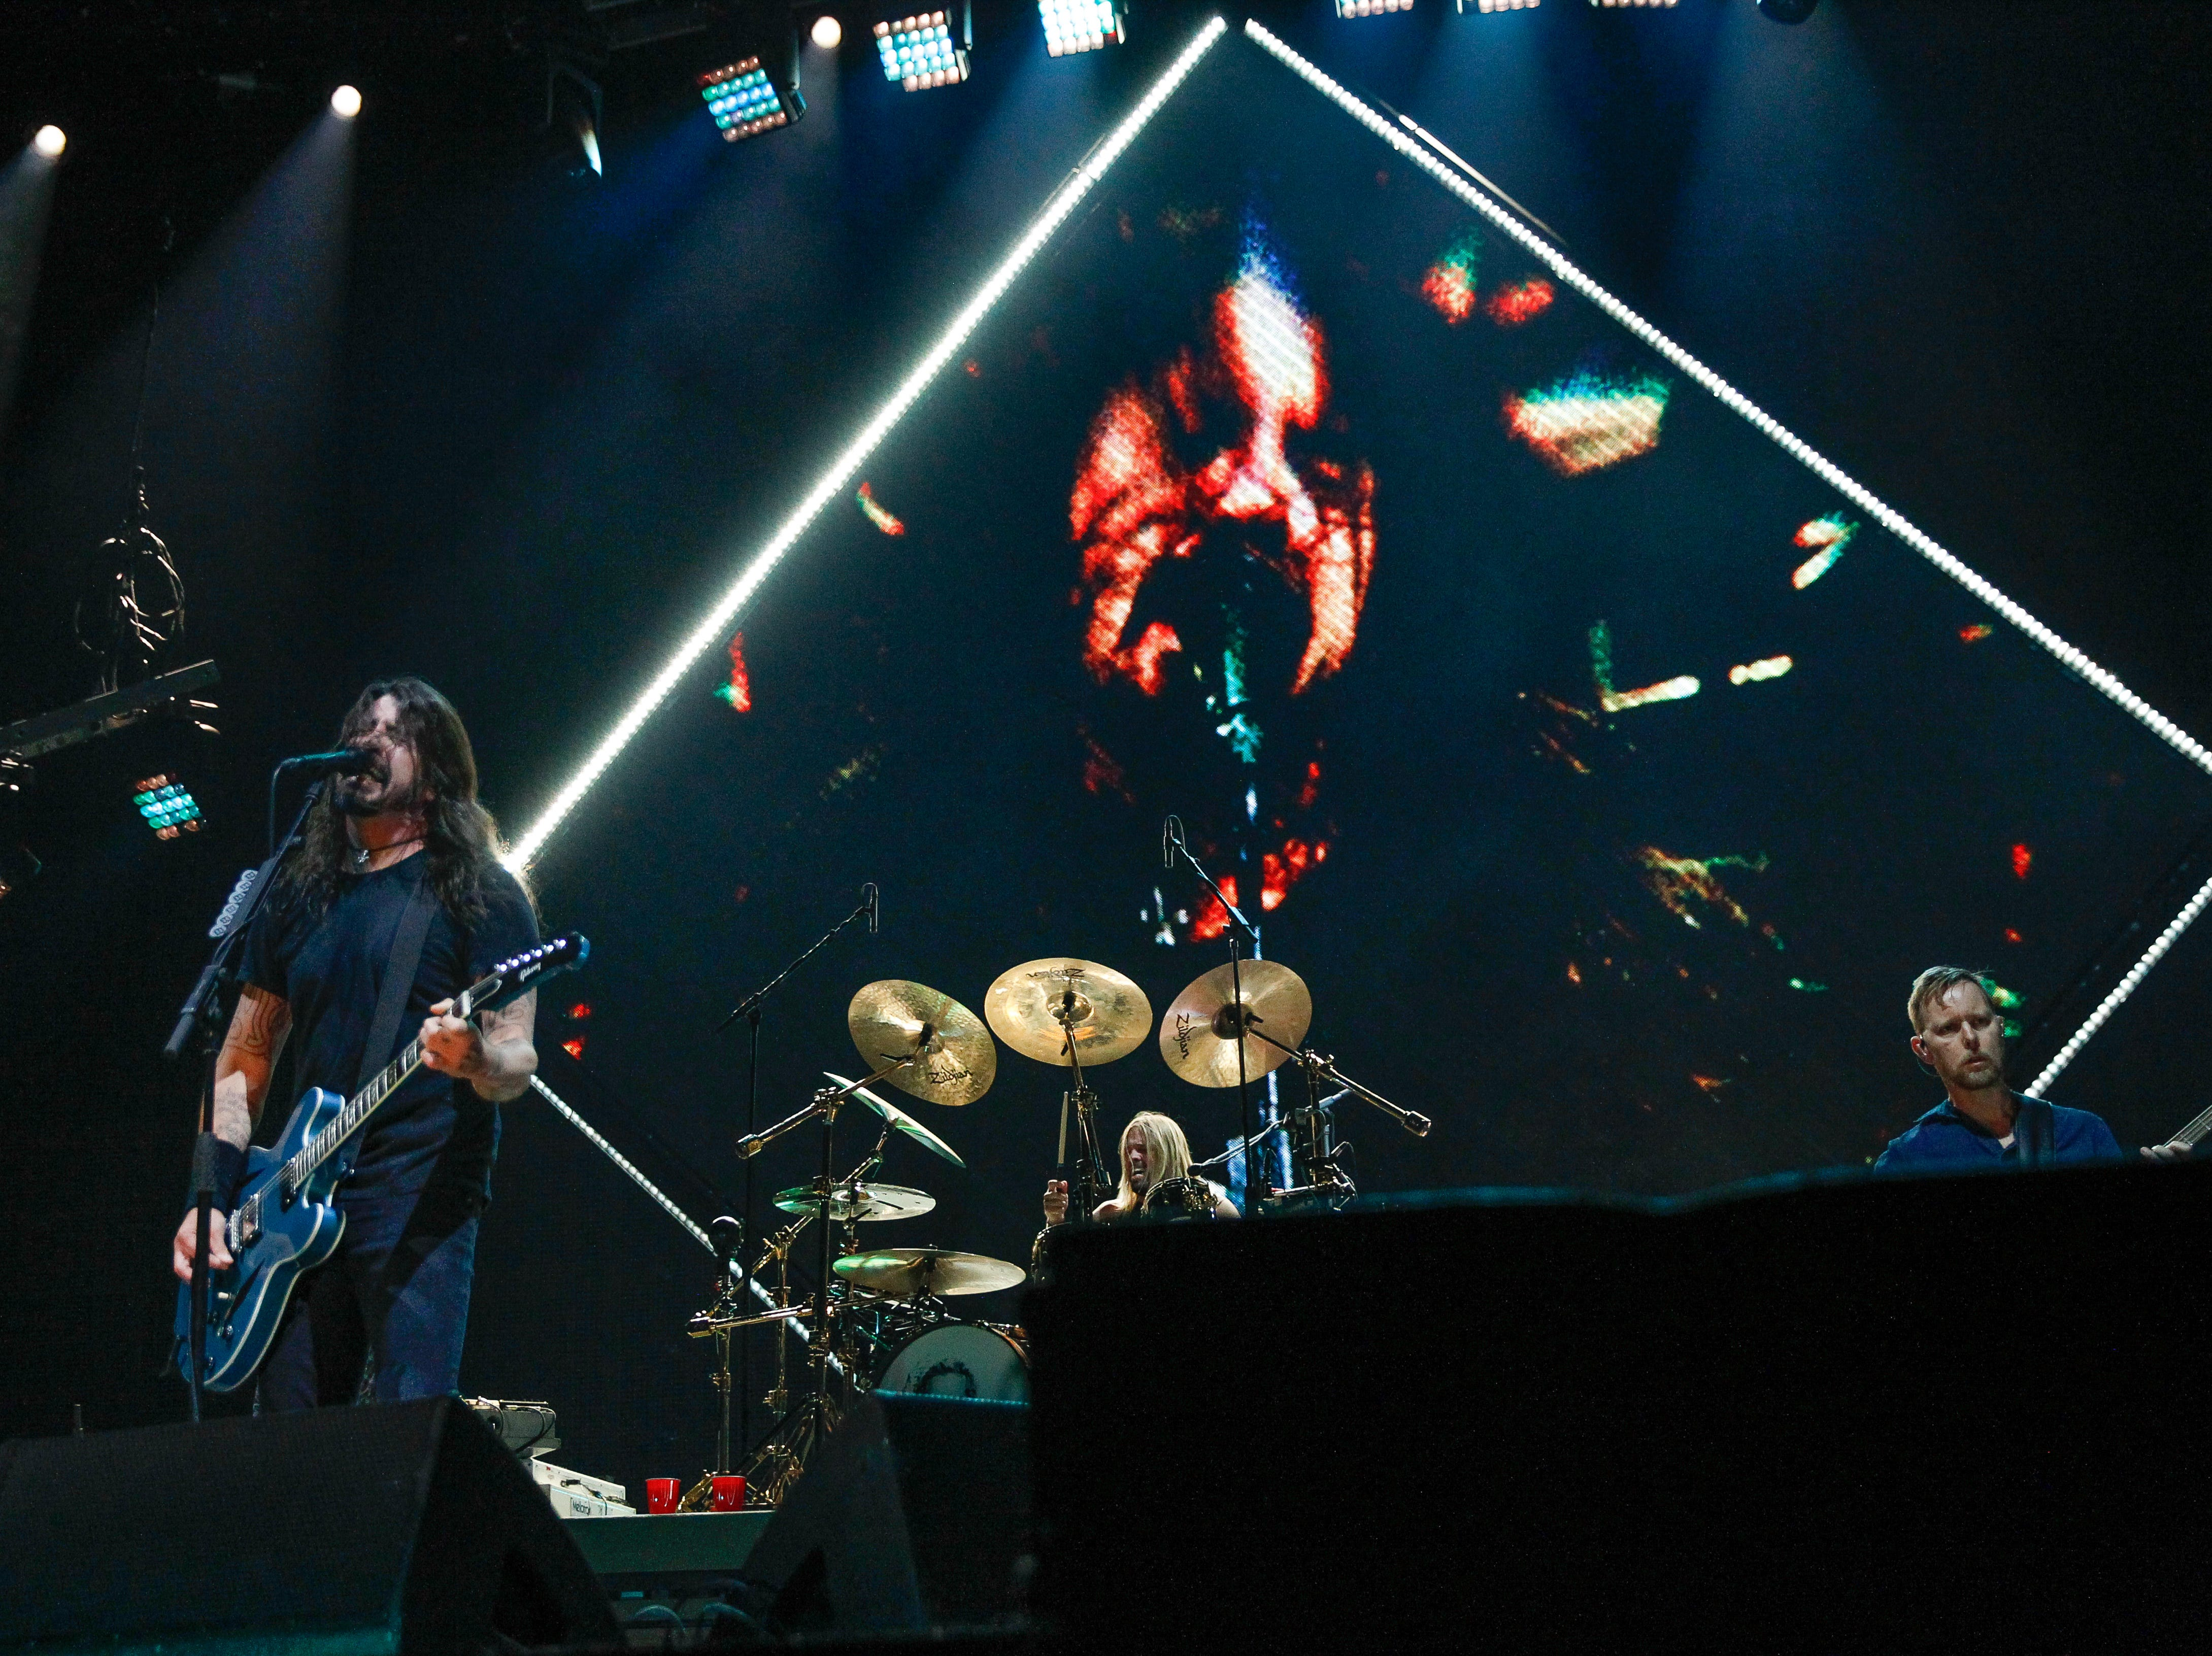 """The Foo Fighters' Monday night show at Little Caesars Arena is one of the last four on the schedule after 1-1/2 years of touring in support of the """"Concrete and Gold"""" album, frontman Dave Grohl, pictured, said."""